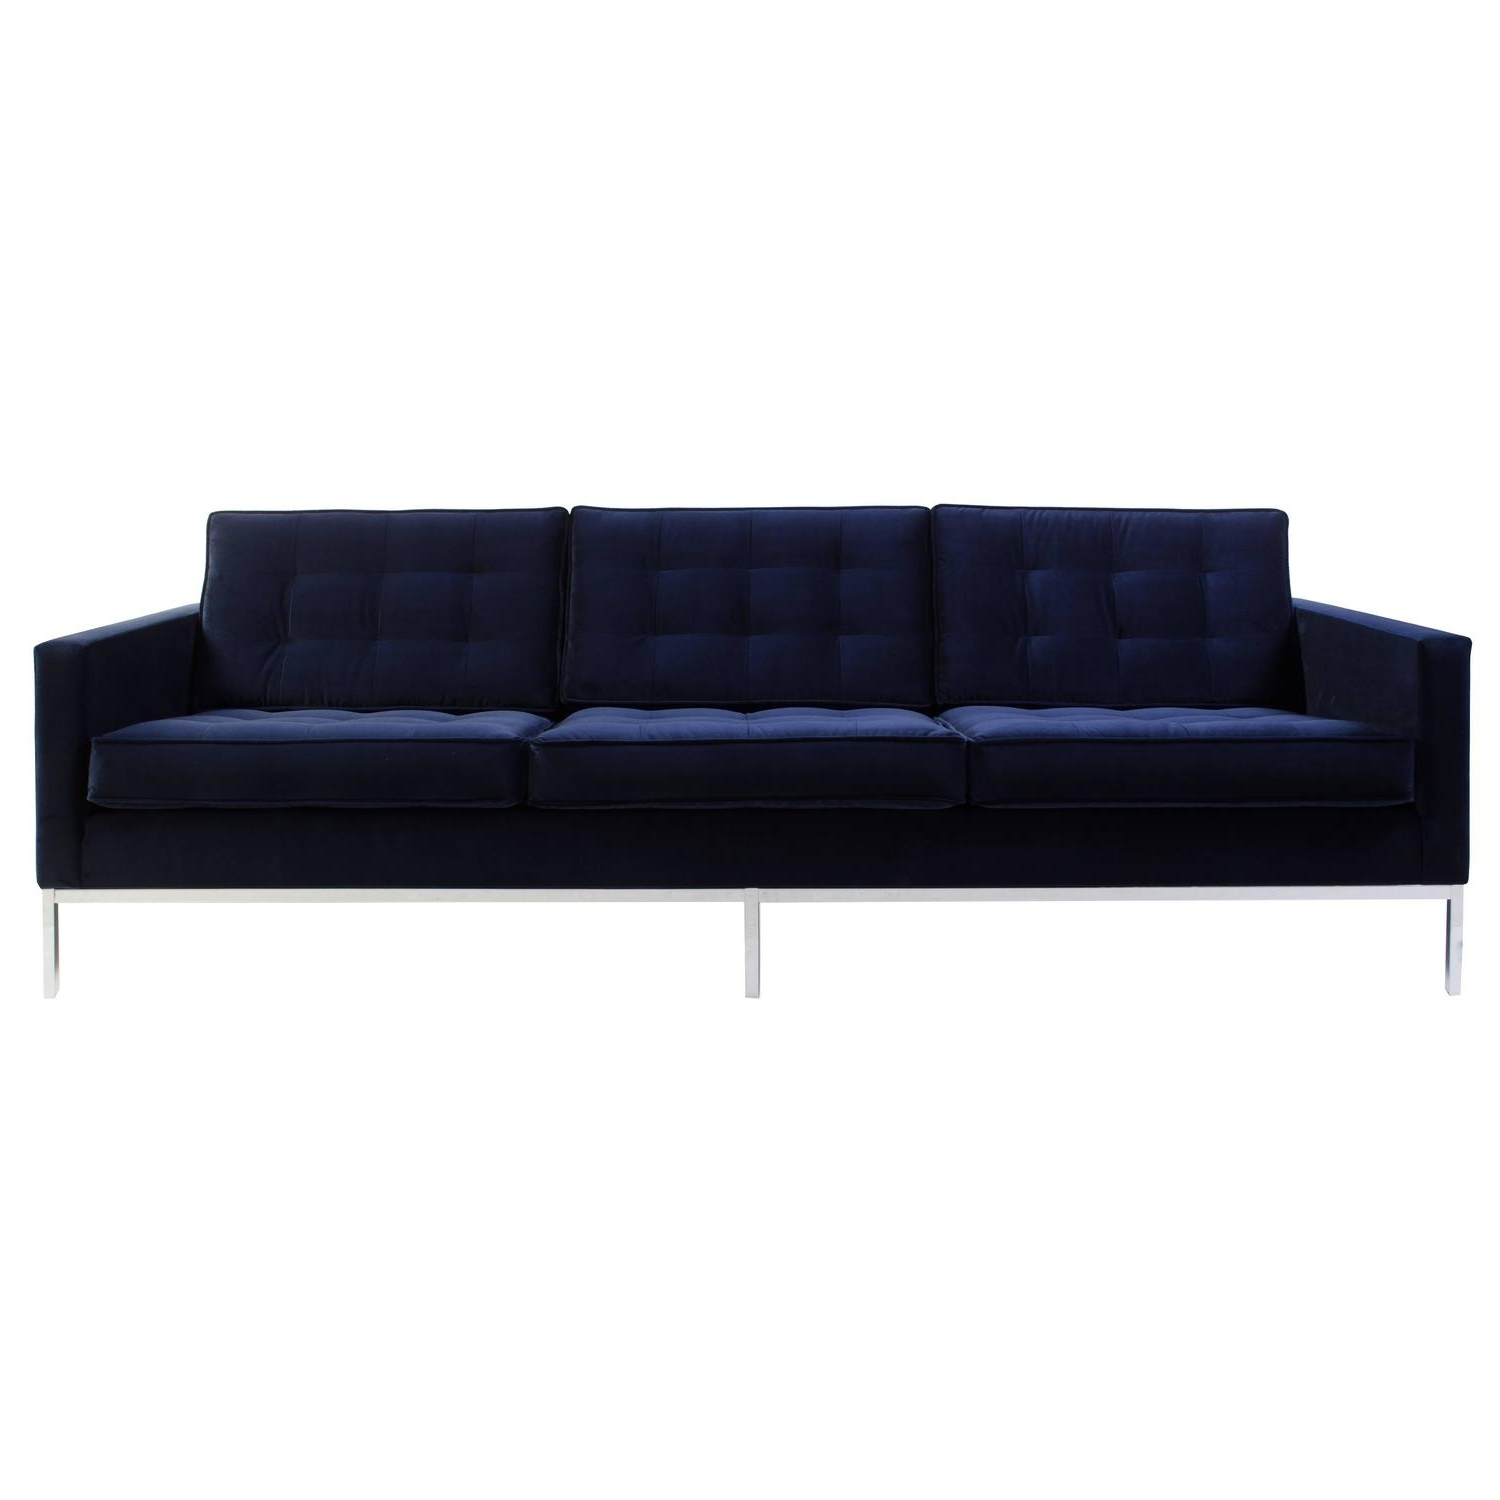 Current Florence Sofas With Florence Knoll Sofas – 59 For Sale At 1Stdibs (View 3 of 20)